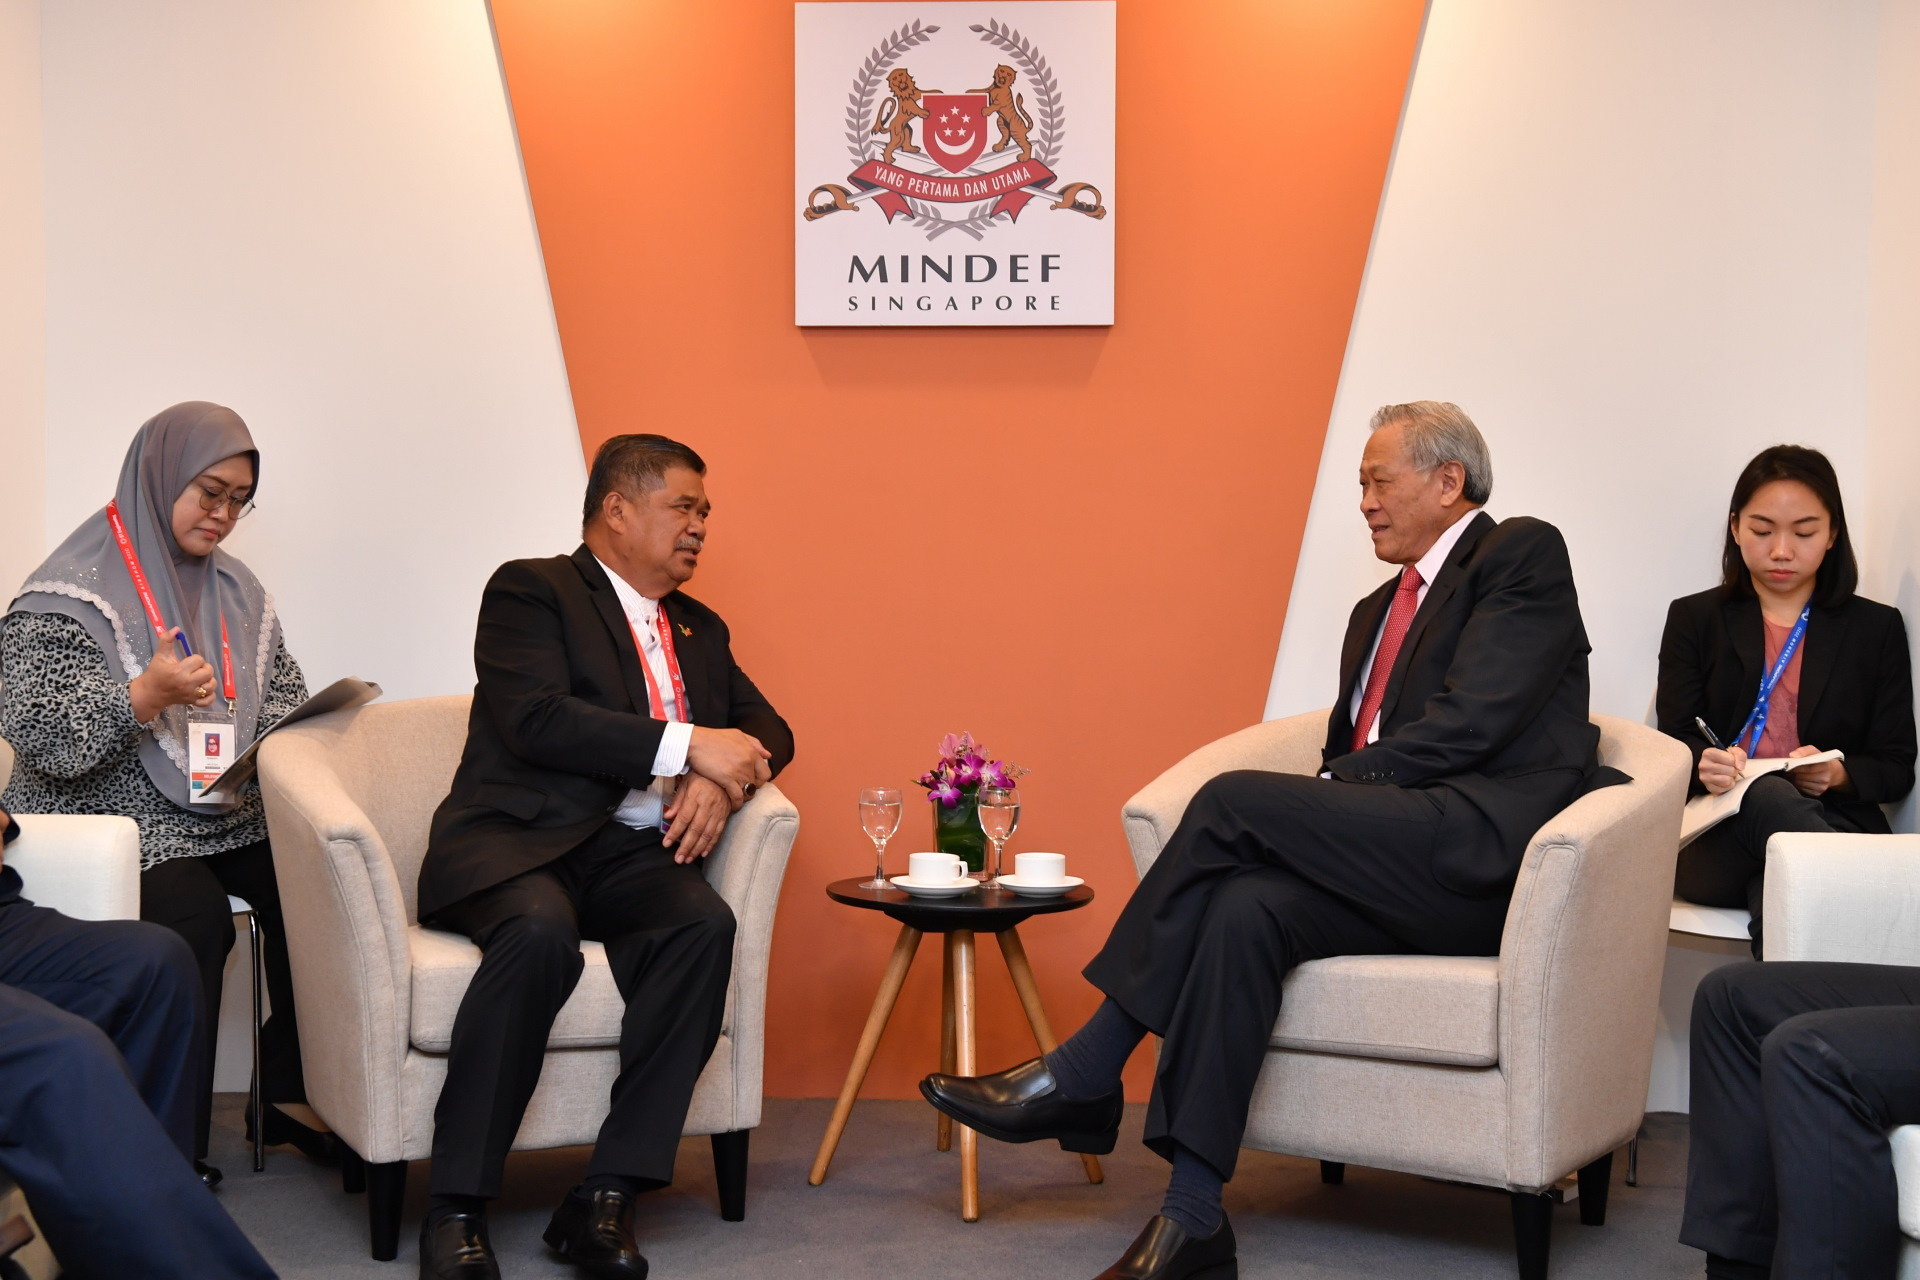 Malaysia Minister of Defence Mohamad Sabu (left) calling on Minister for Defence Dr Ng Eng Hen (right) earlier today.